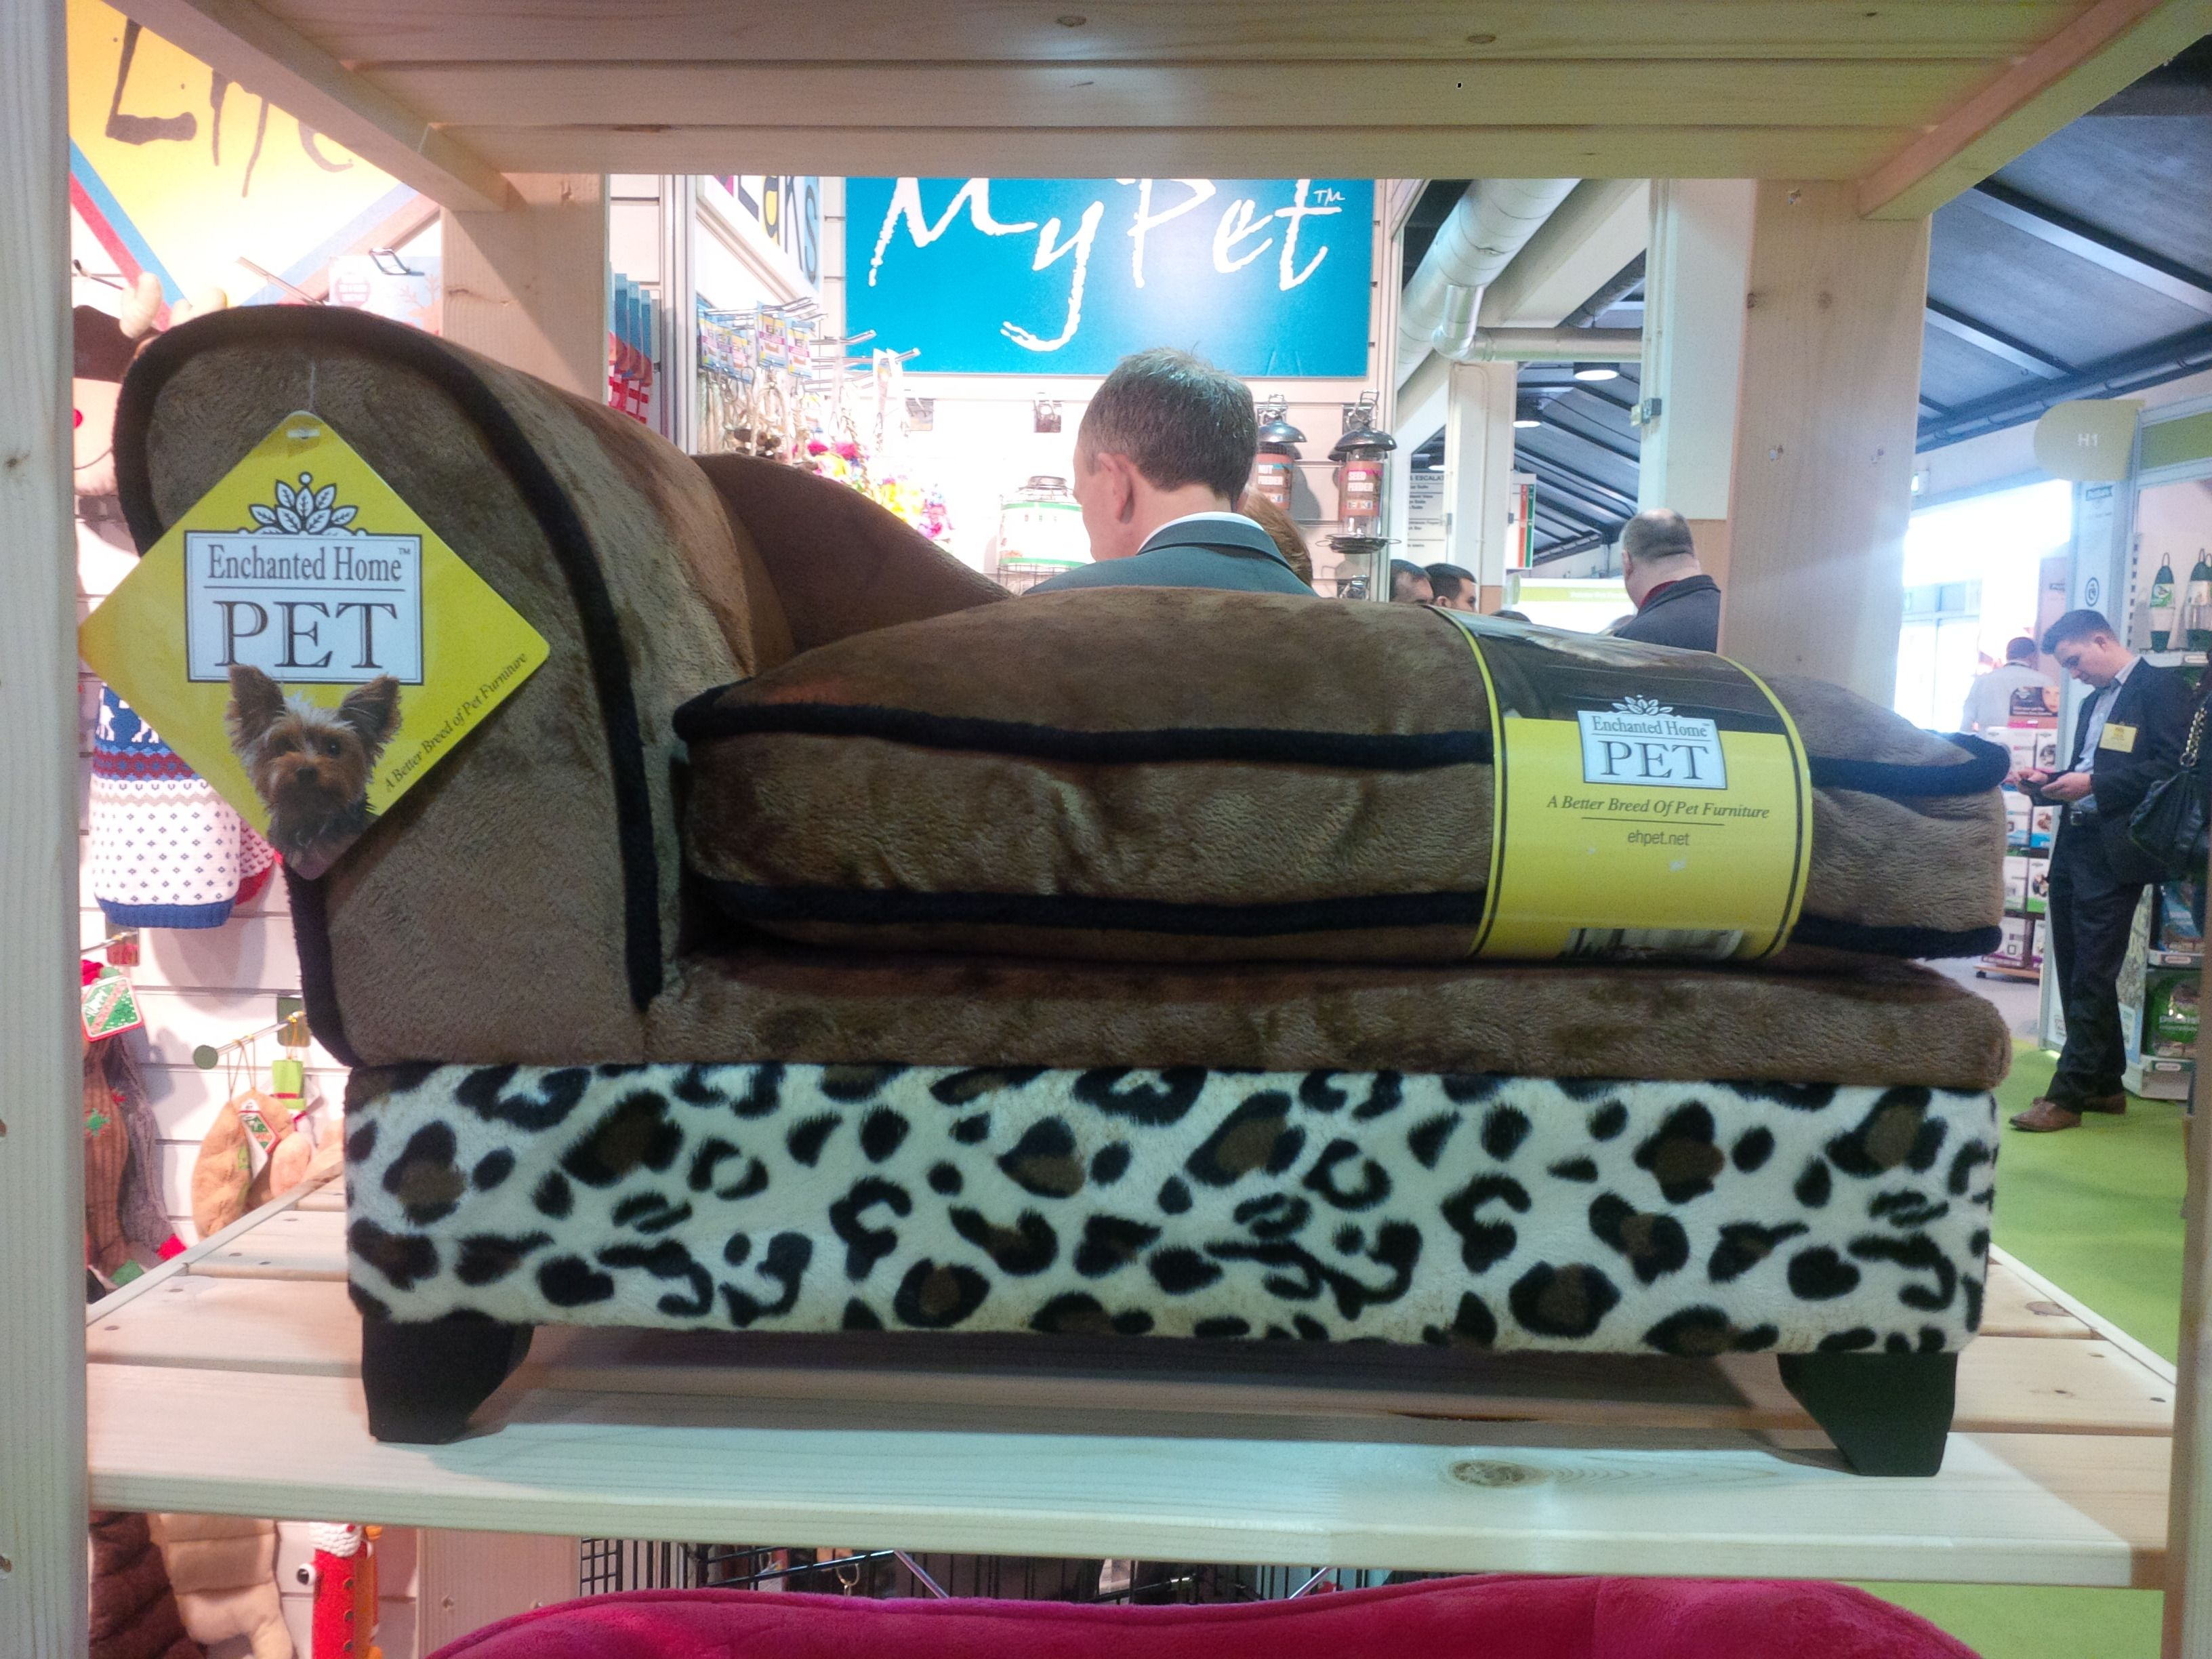 For an added bit of pooch pampering, the Pet Bed from James & Steel